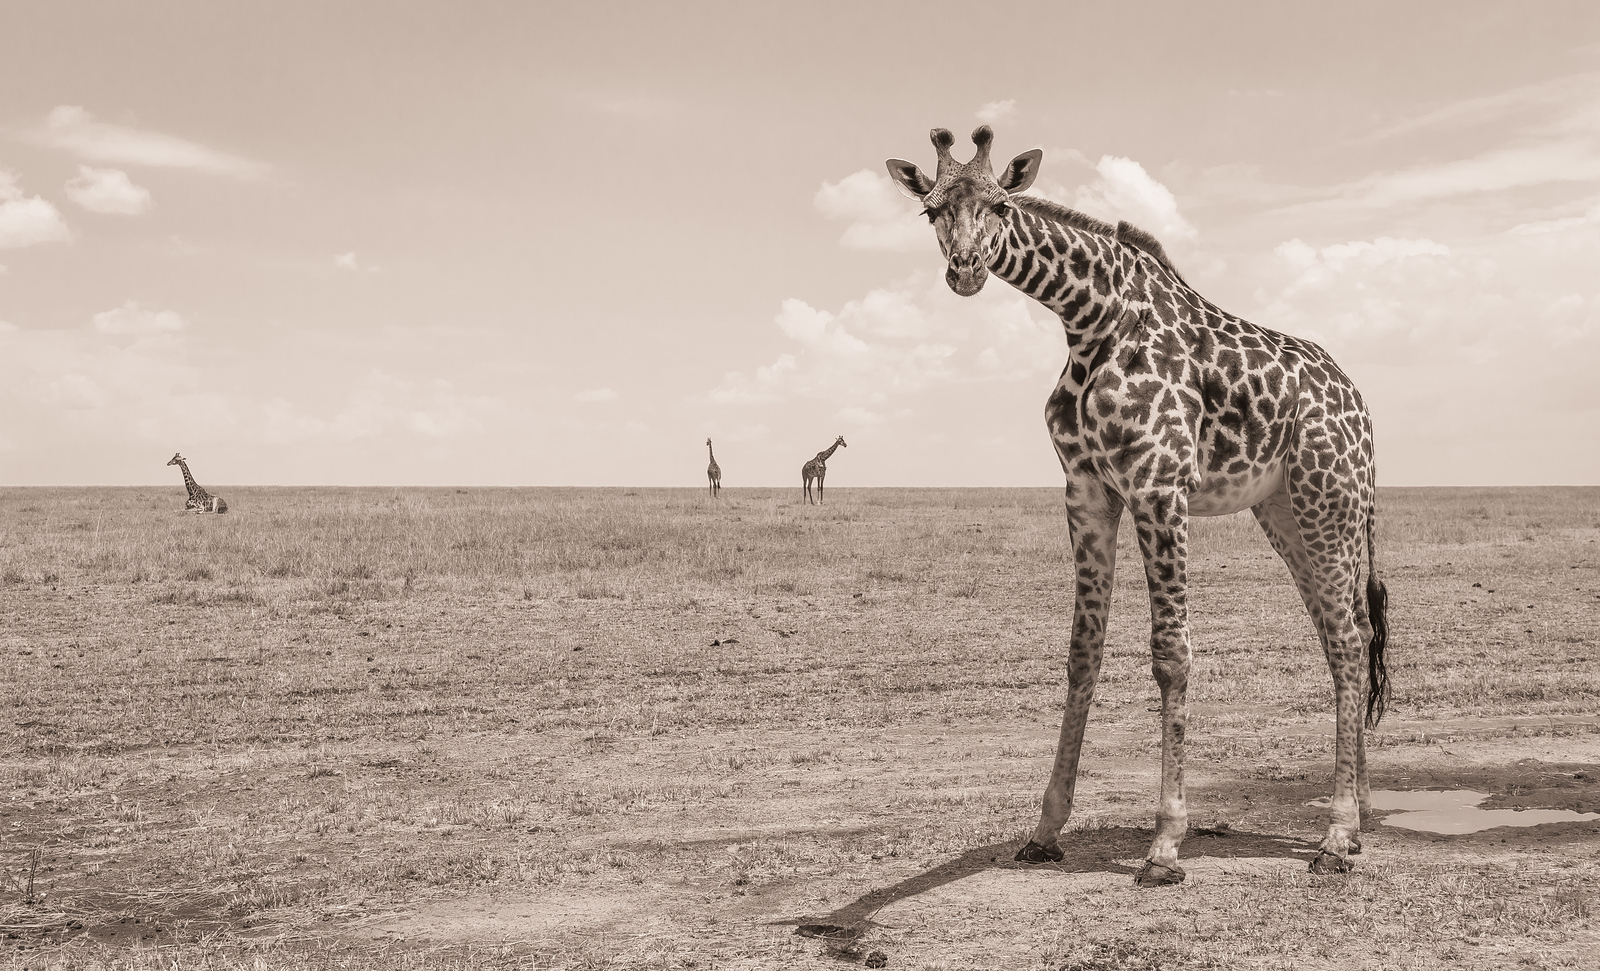 Giraffe intrigue